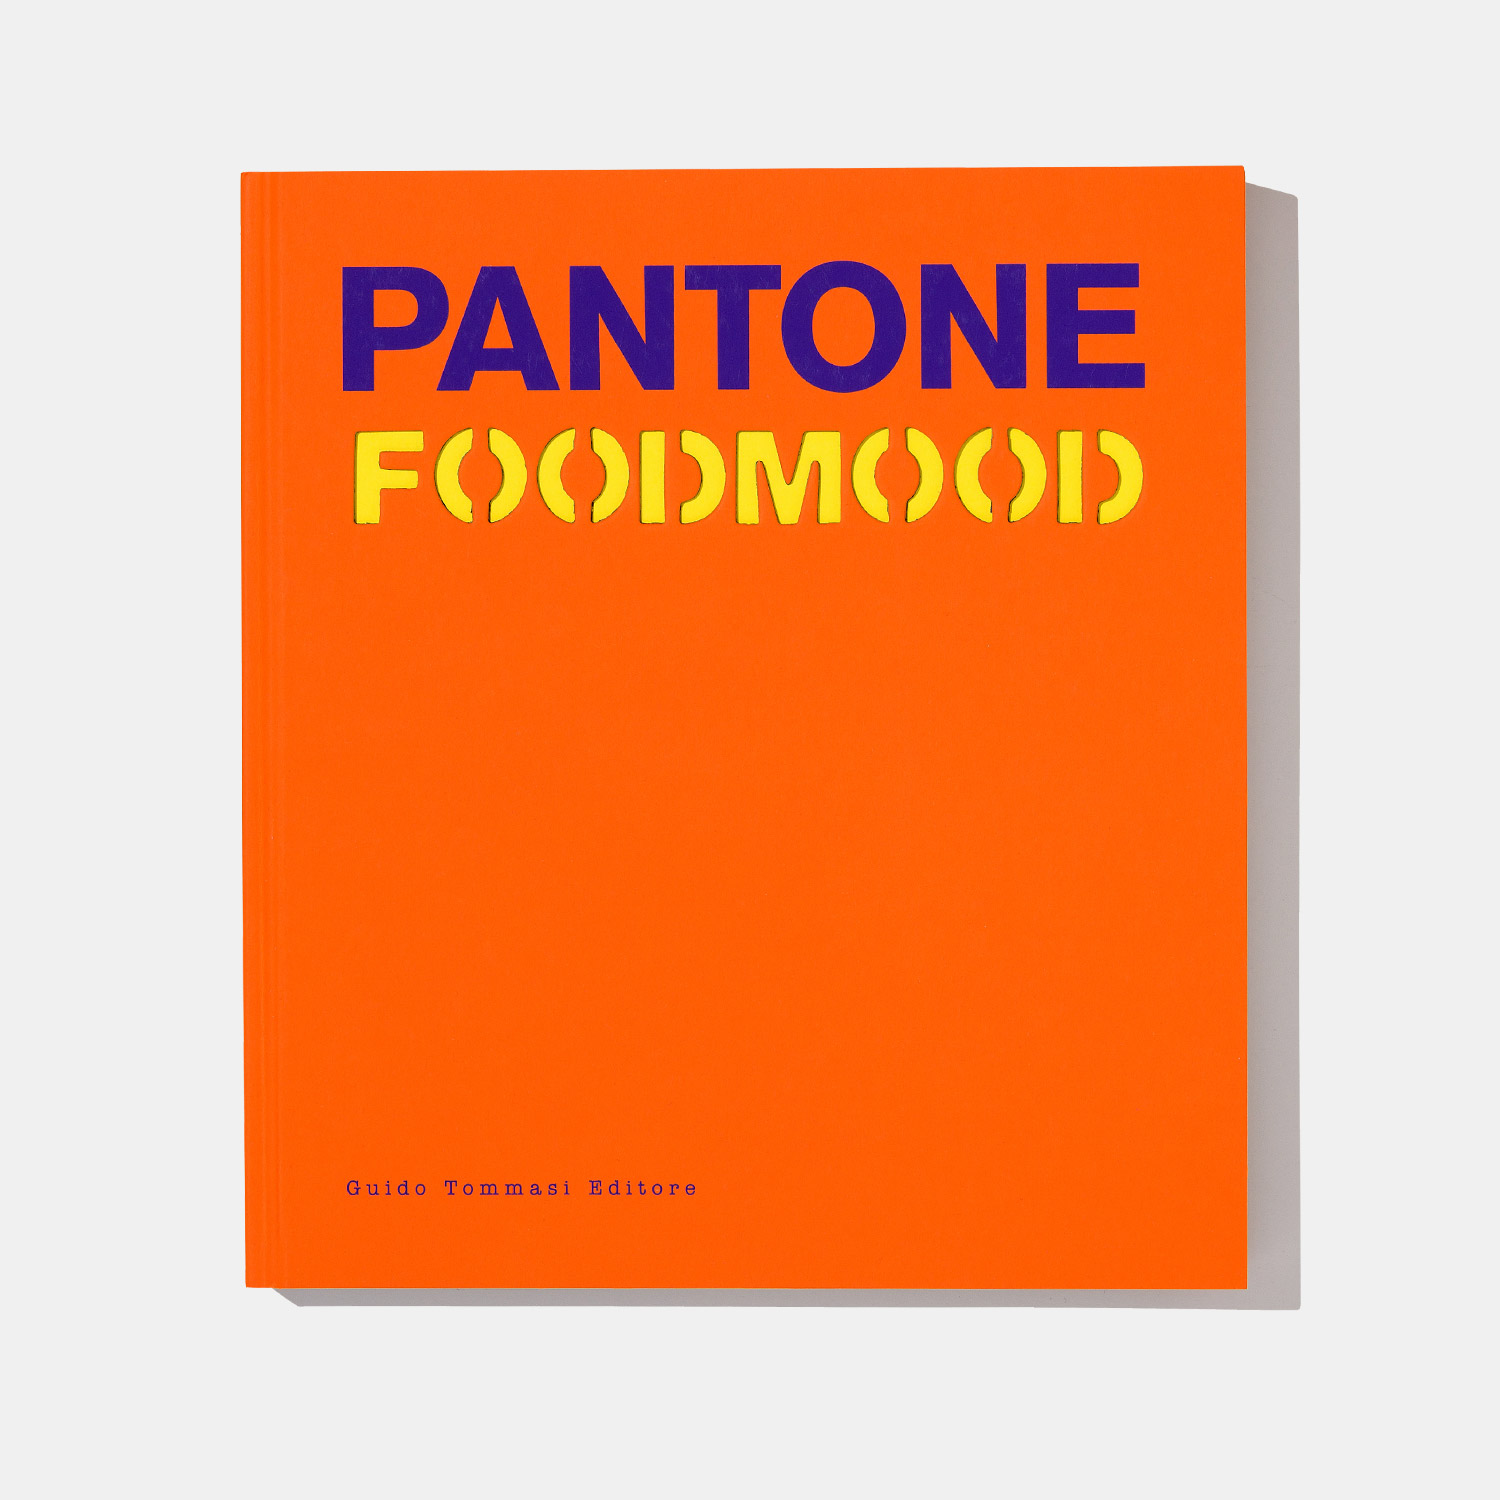 Pantone Foodmood Book